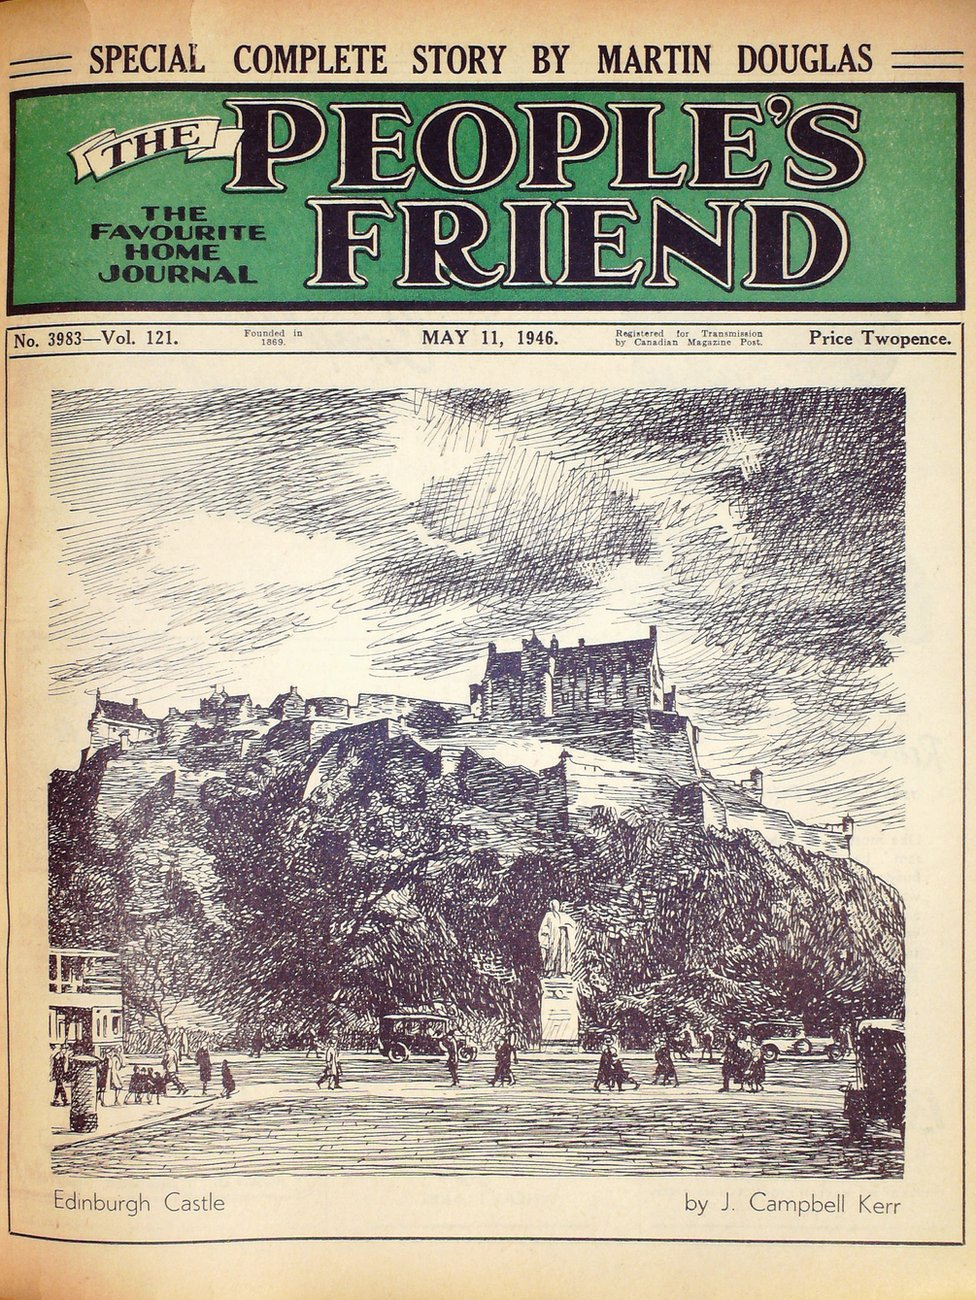 The first edition of the People's Friend to feature a drawing of a Scottish landmark was in 1946